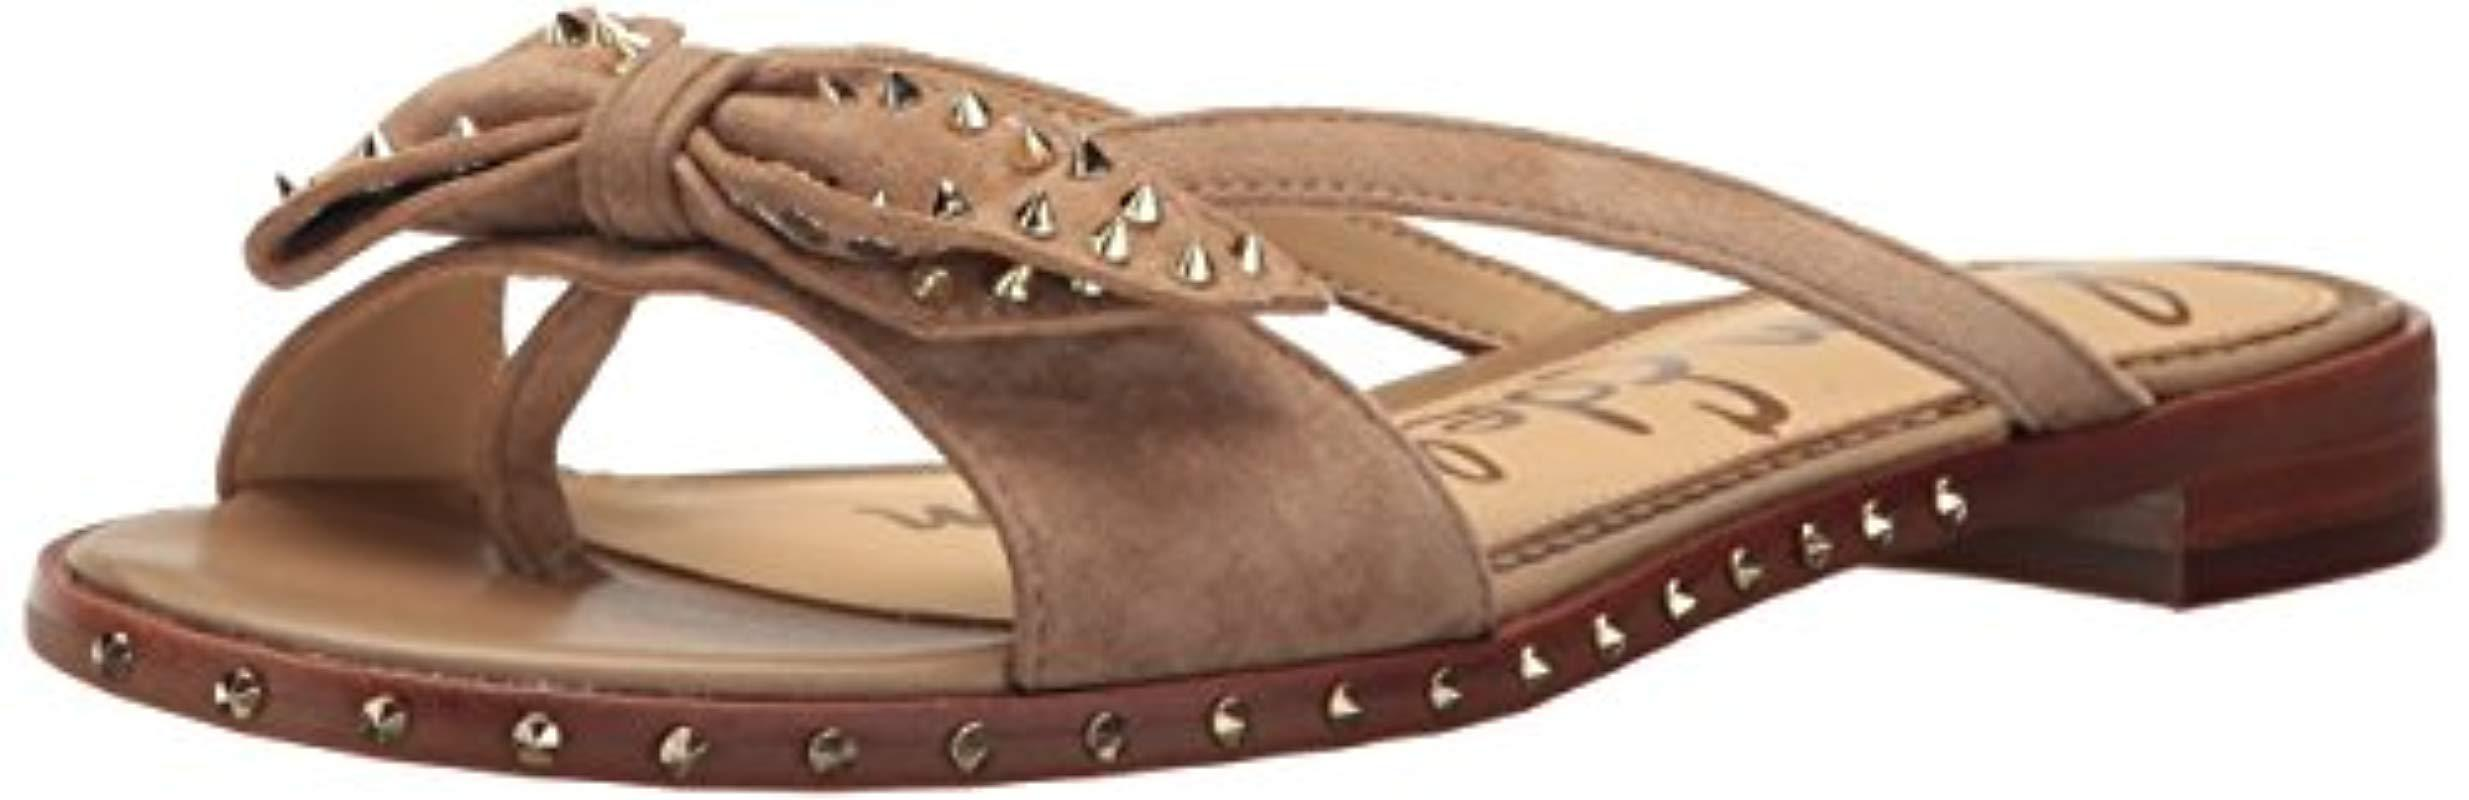 f6f5090b35aa Lyst - Sam Edelman Dariel Sandal in Natural - Save 31.0%